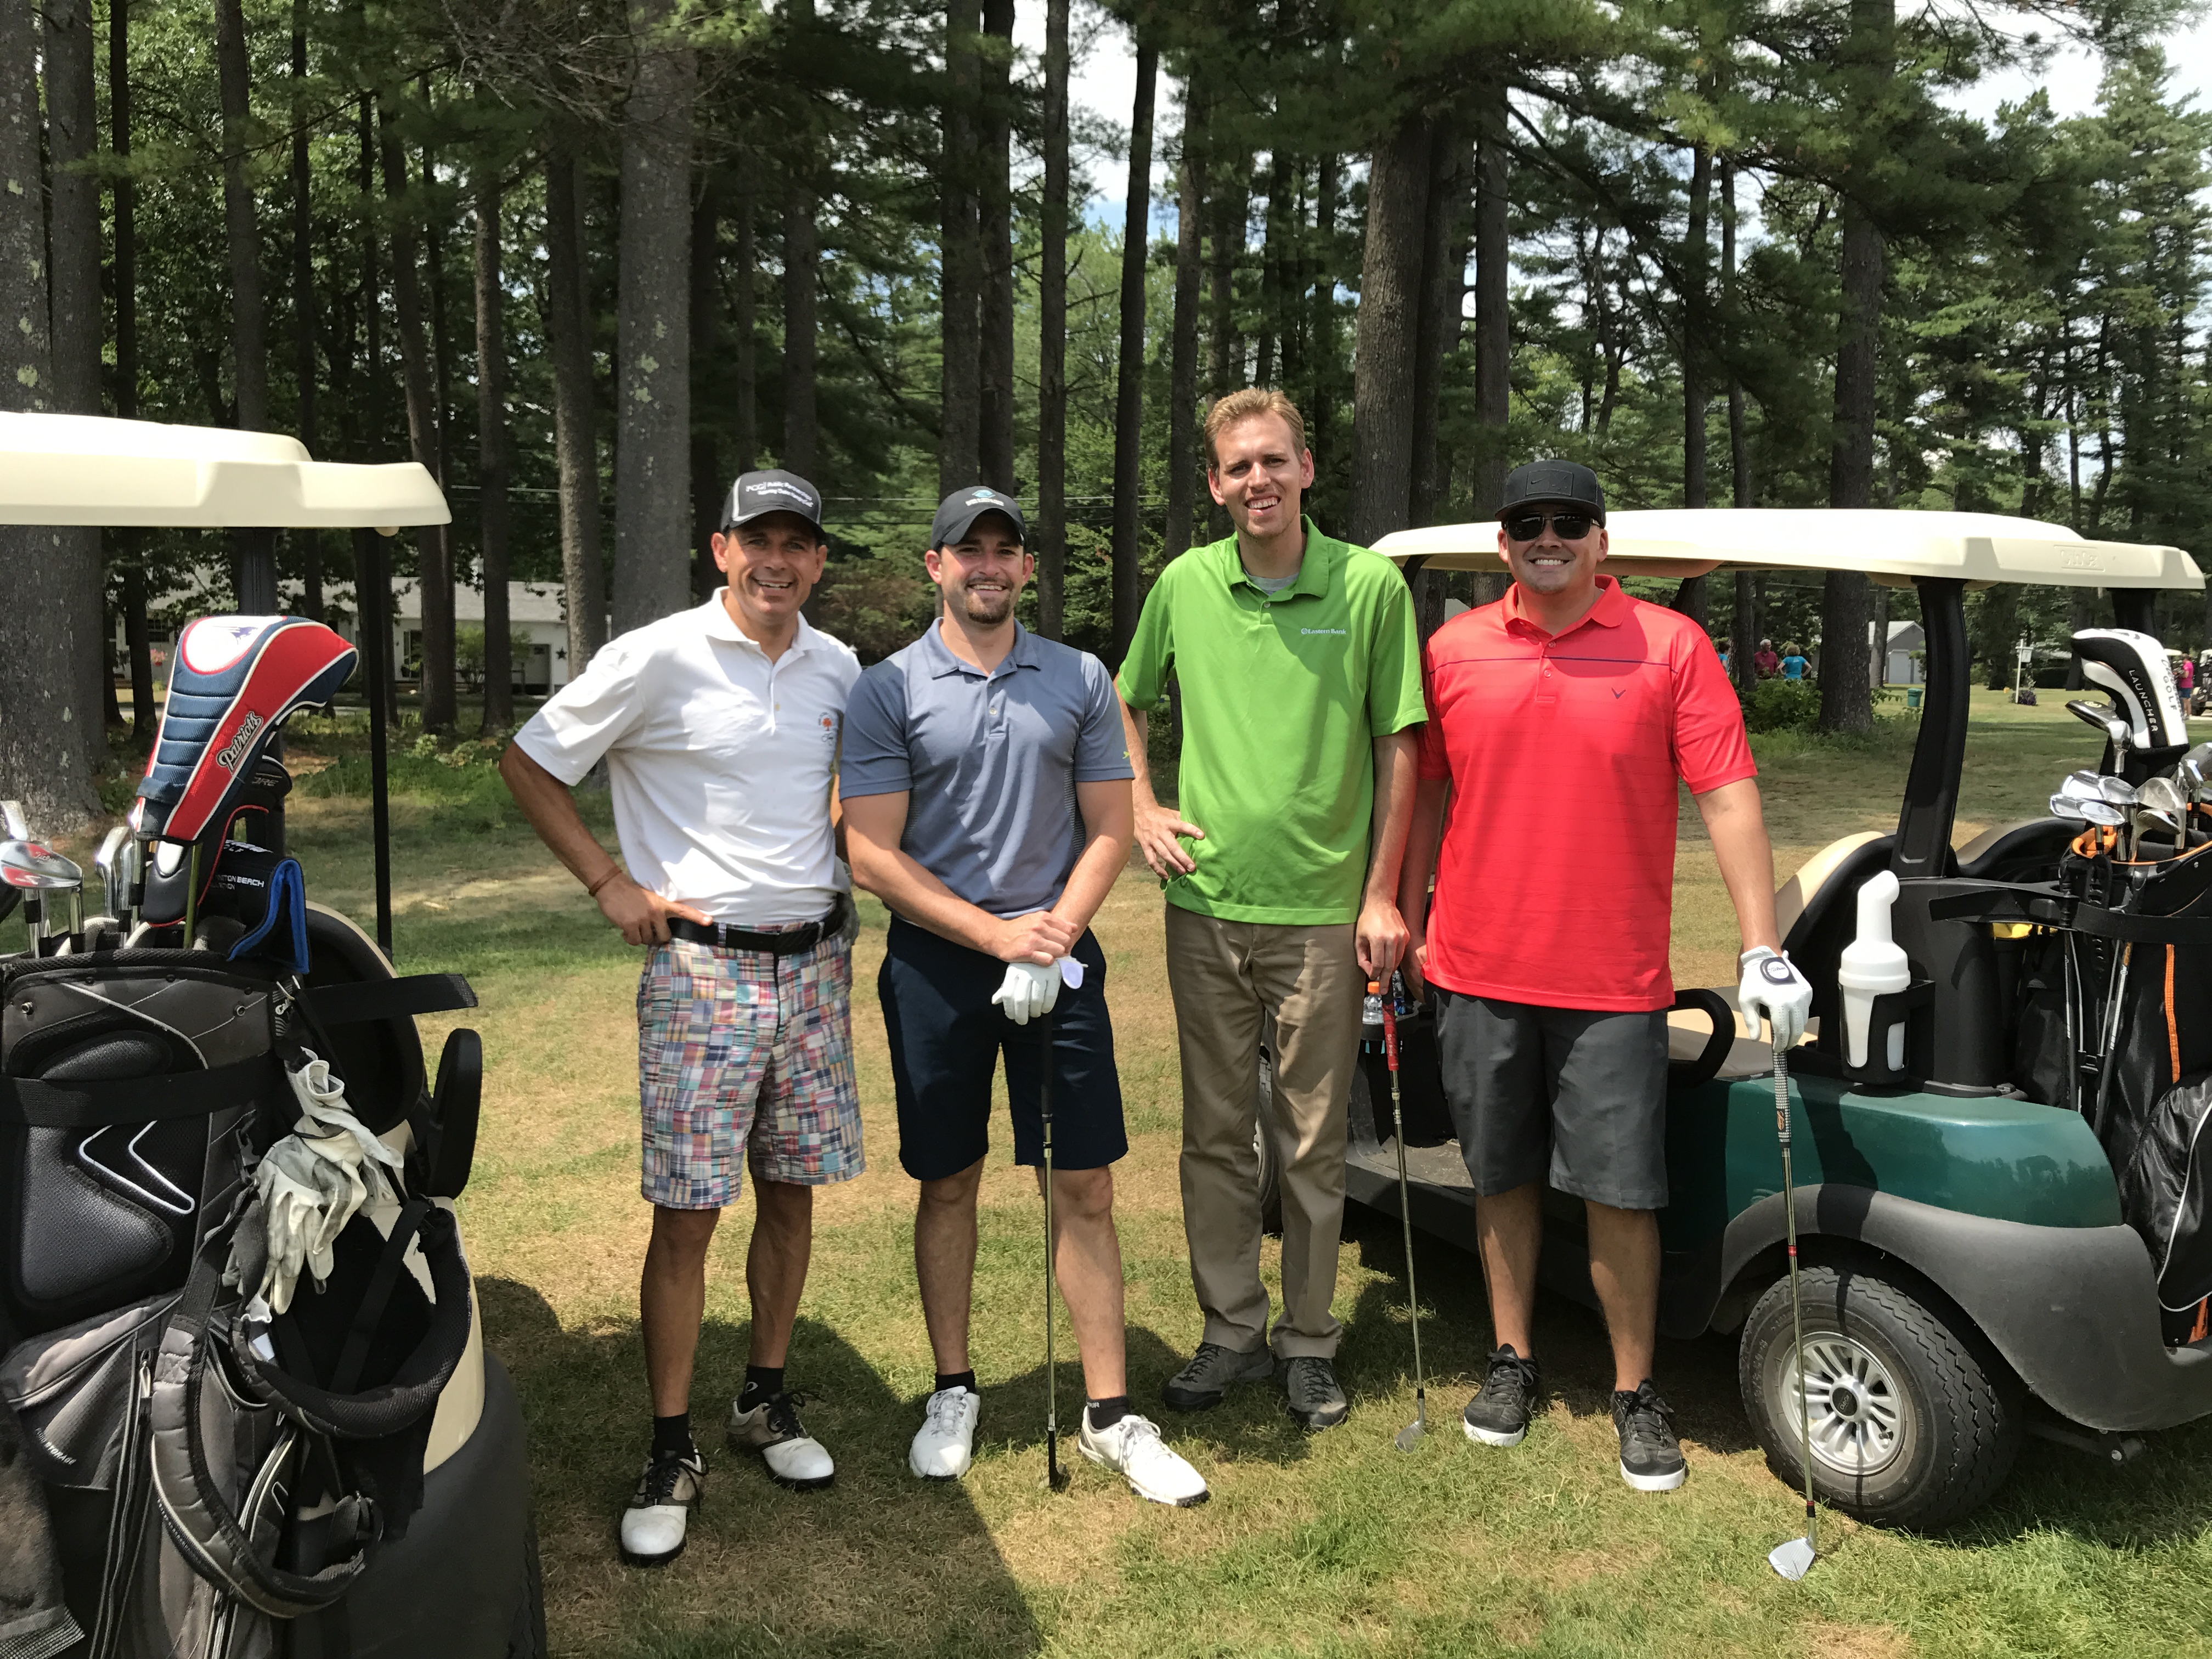 Winners of the 2017 Funds for Education Golf Tournament presented by the Greater Concord Chamber of Commerce: (From left) Brian Lavoie, Daniel Gray, Ryan Desmarais and David Simons